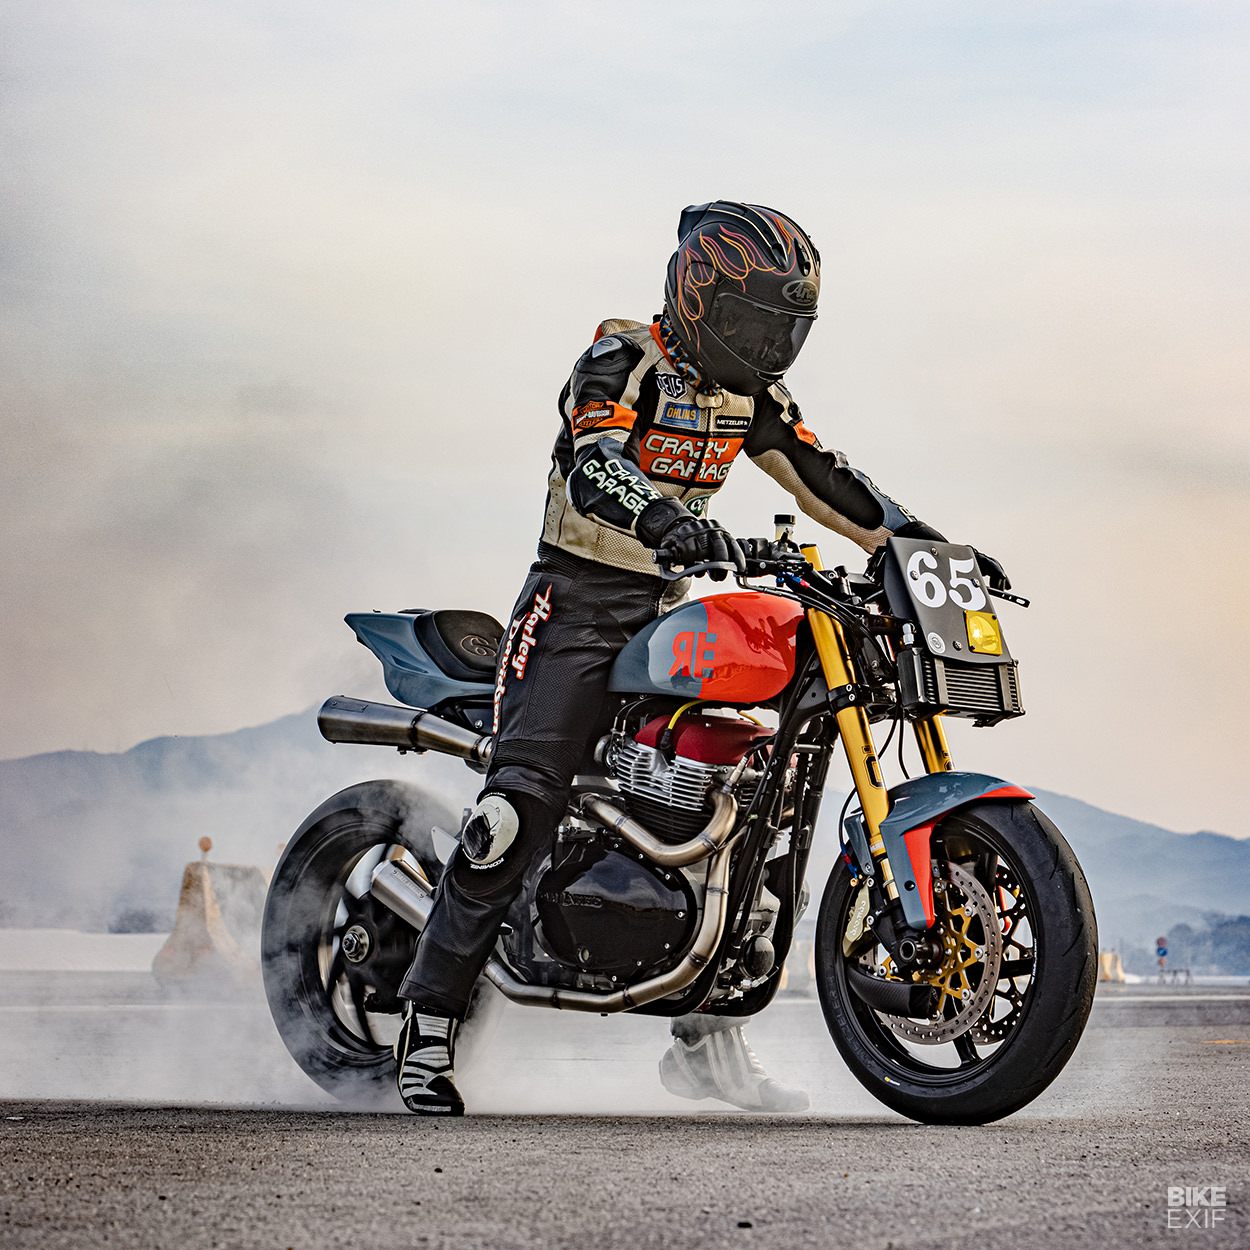 Royal Enfield GT650 racing motorcycle by Crazy Garage